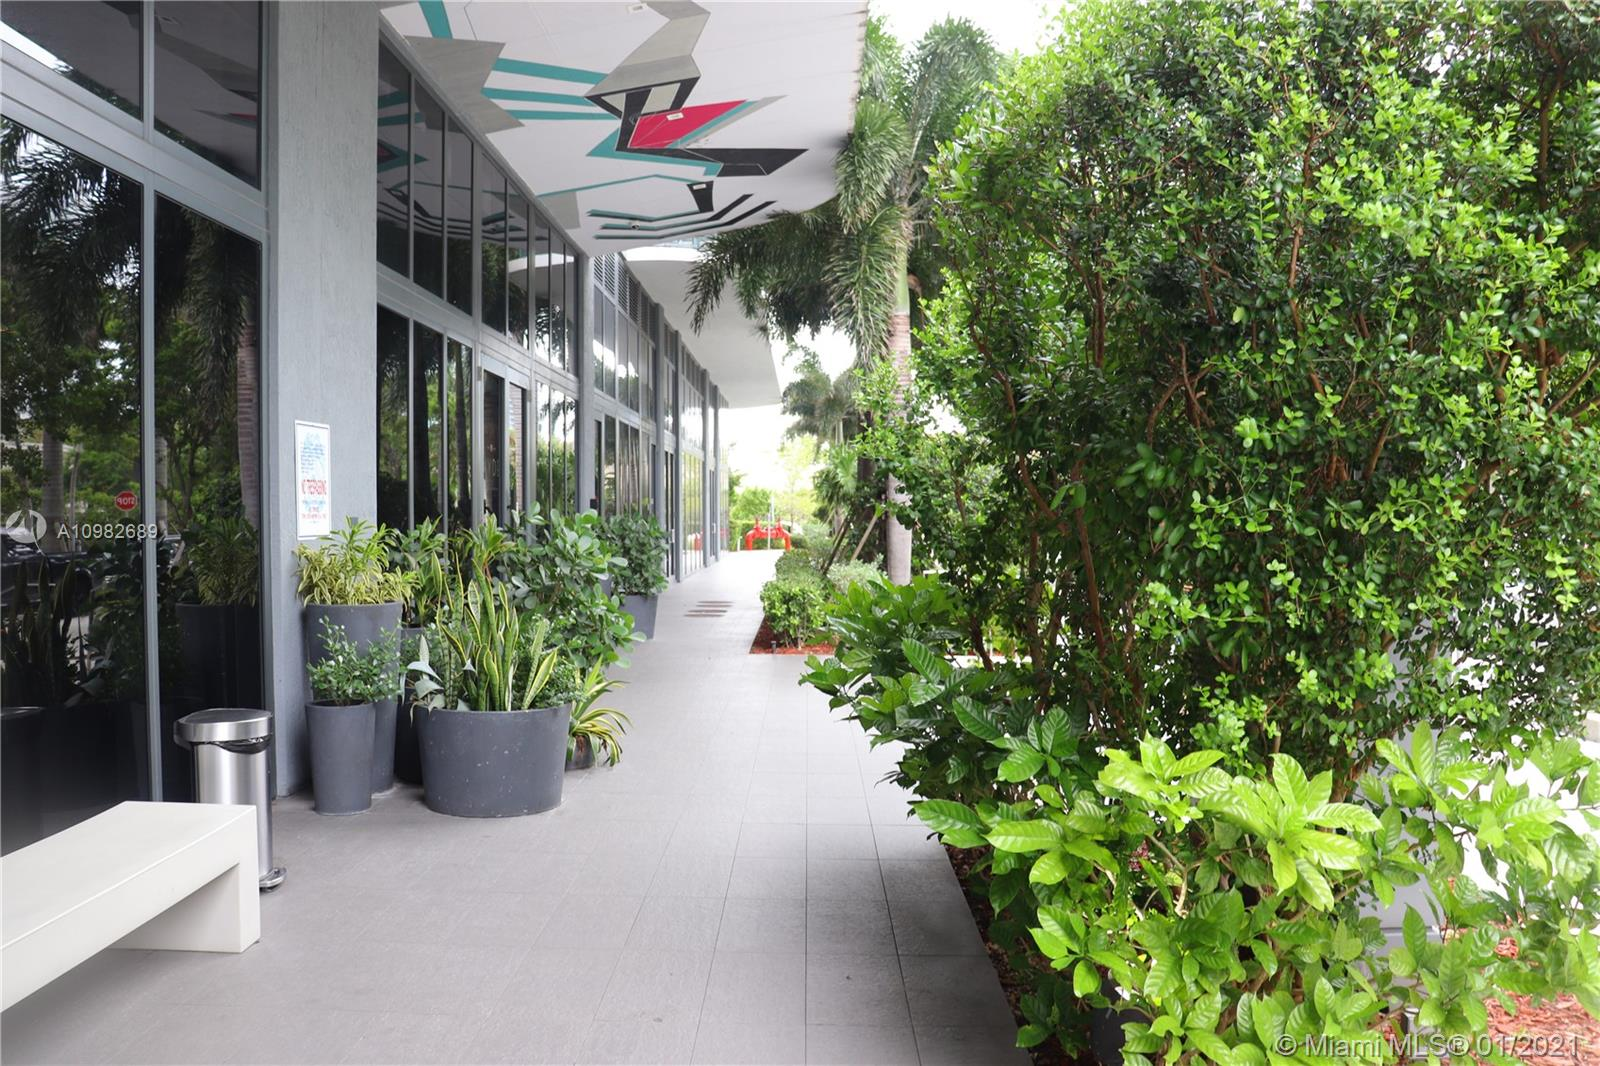 121 NE 34th St # 1209, Miami, Florida 33137, 2 Bedrooms Bedrooms, ,2 BathroomsBathrooms,Residential Lease,For Rent,121 NE 34th St # 1209,A10982689